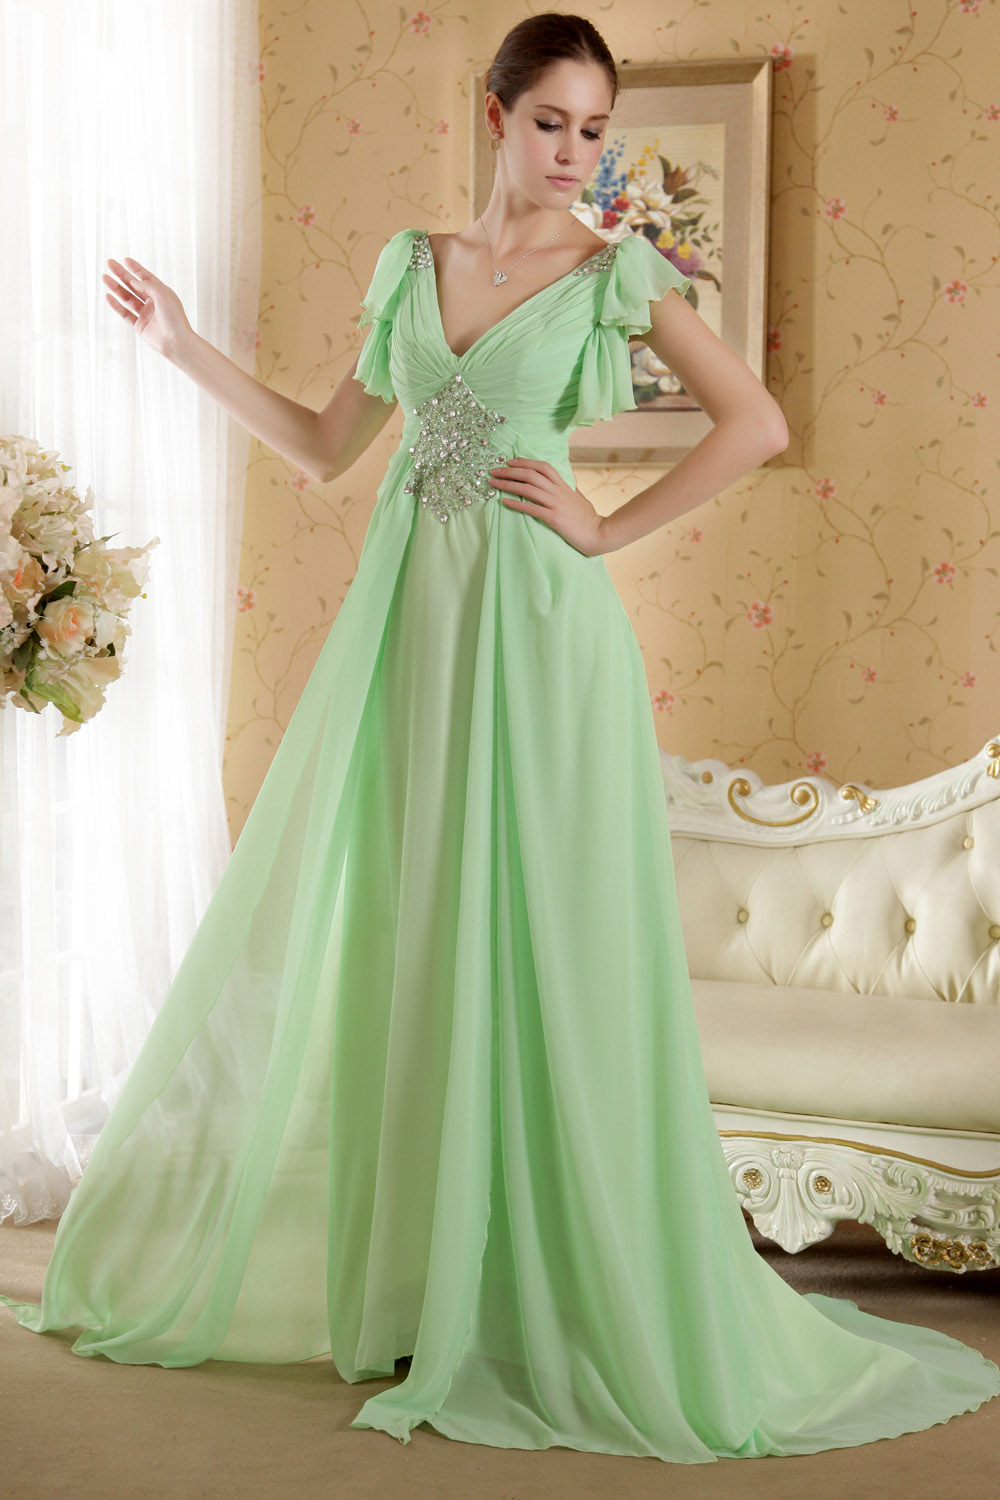 Sheath/Column One Shoulder Floor-length Chiffon Prom Dress